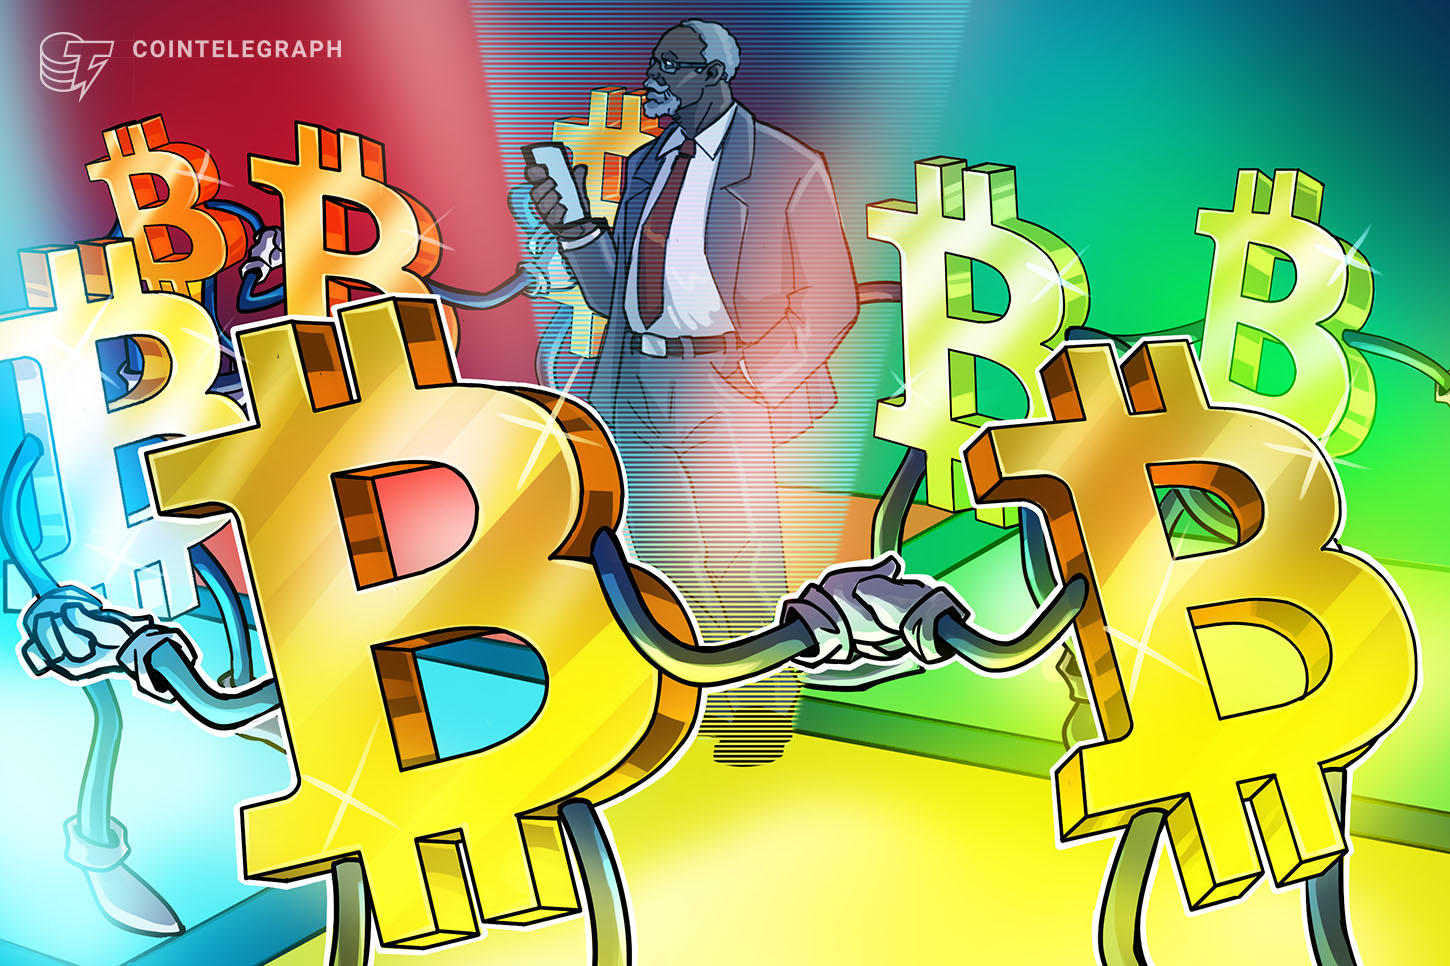 Jackson, Tennessee follows Miami's lead to adopt Bitcoin operations